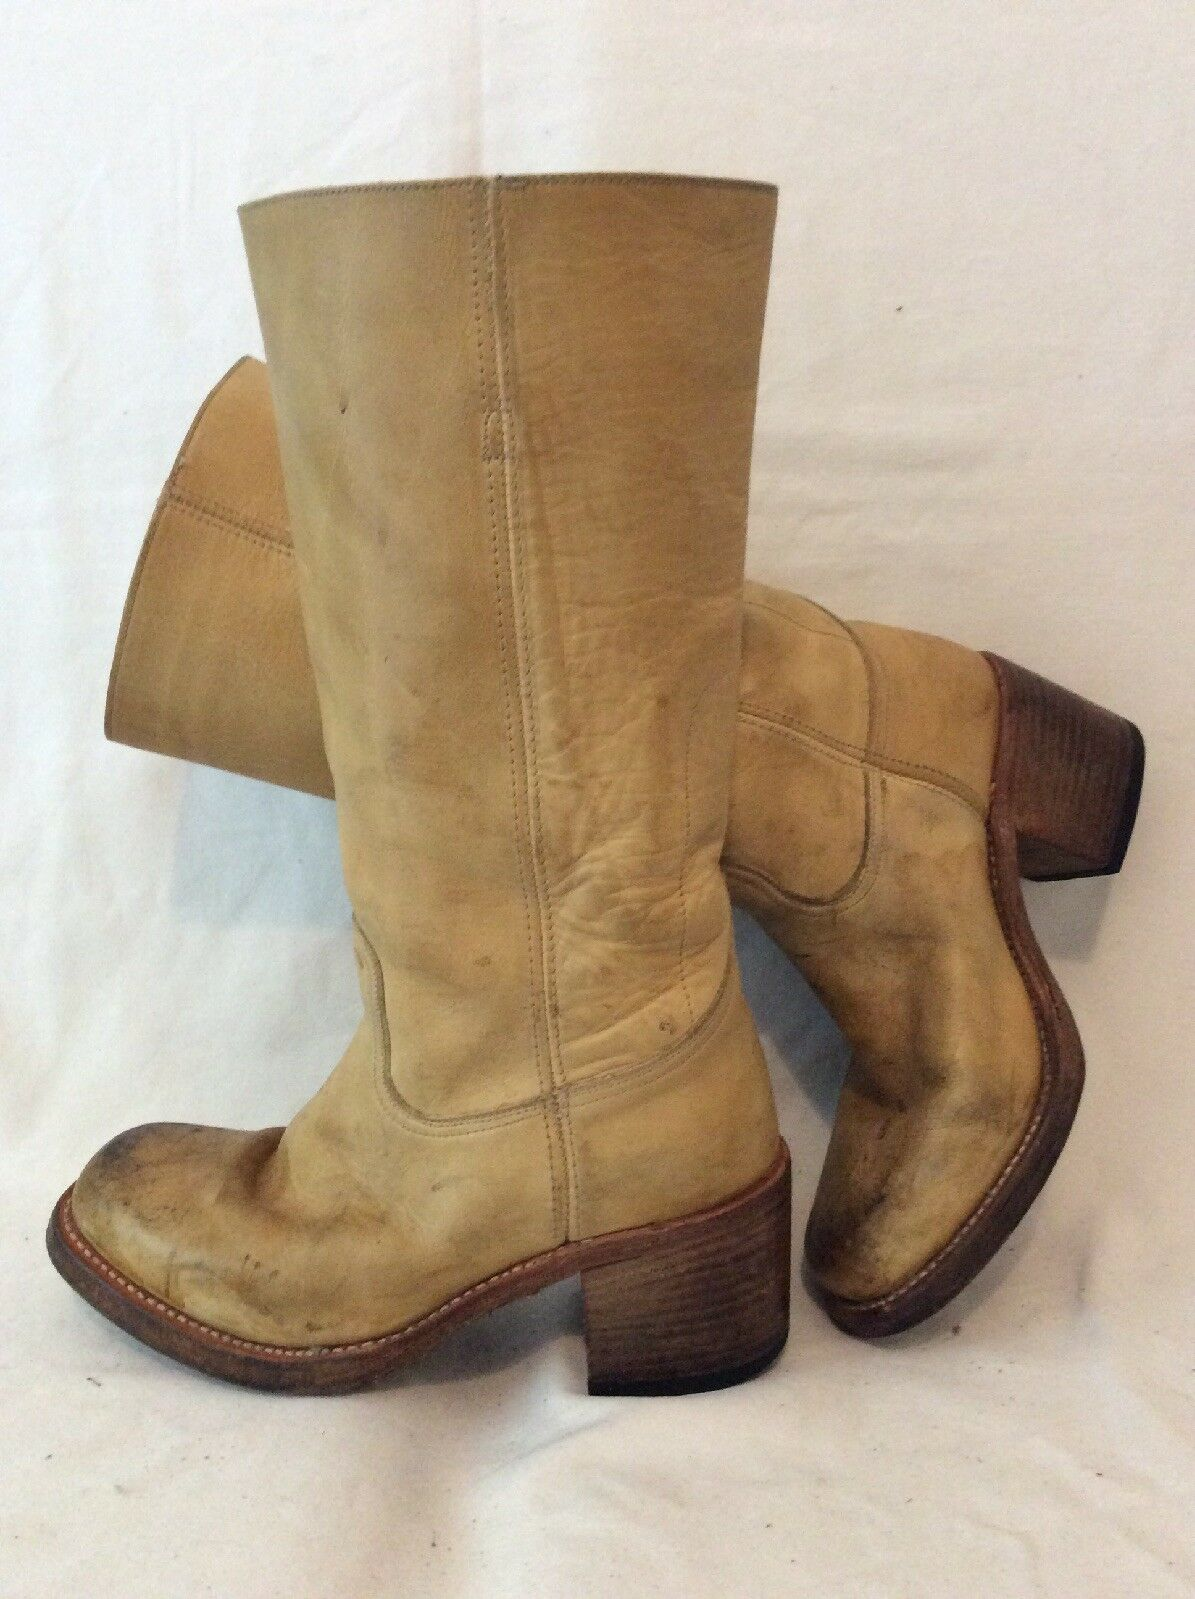 SENDRA Beige Mid Calf Leather Boots Size 6